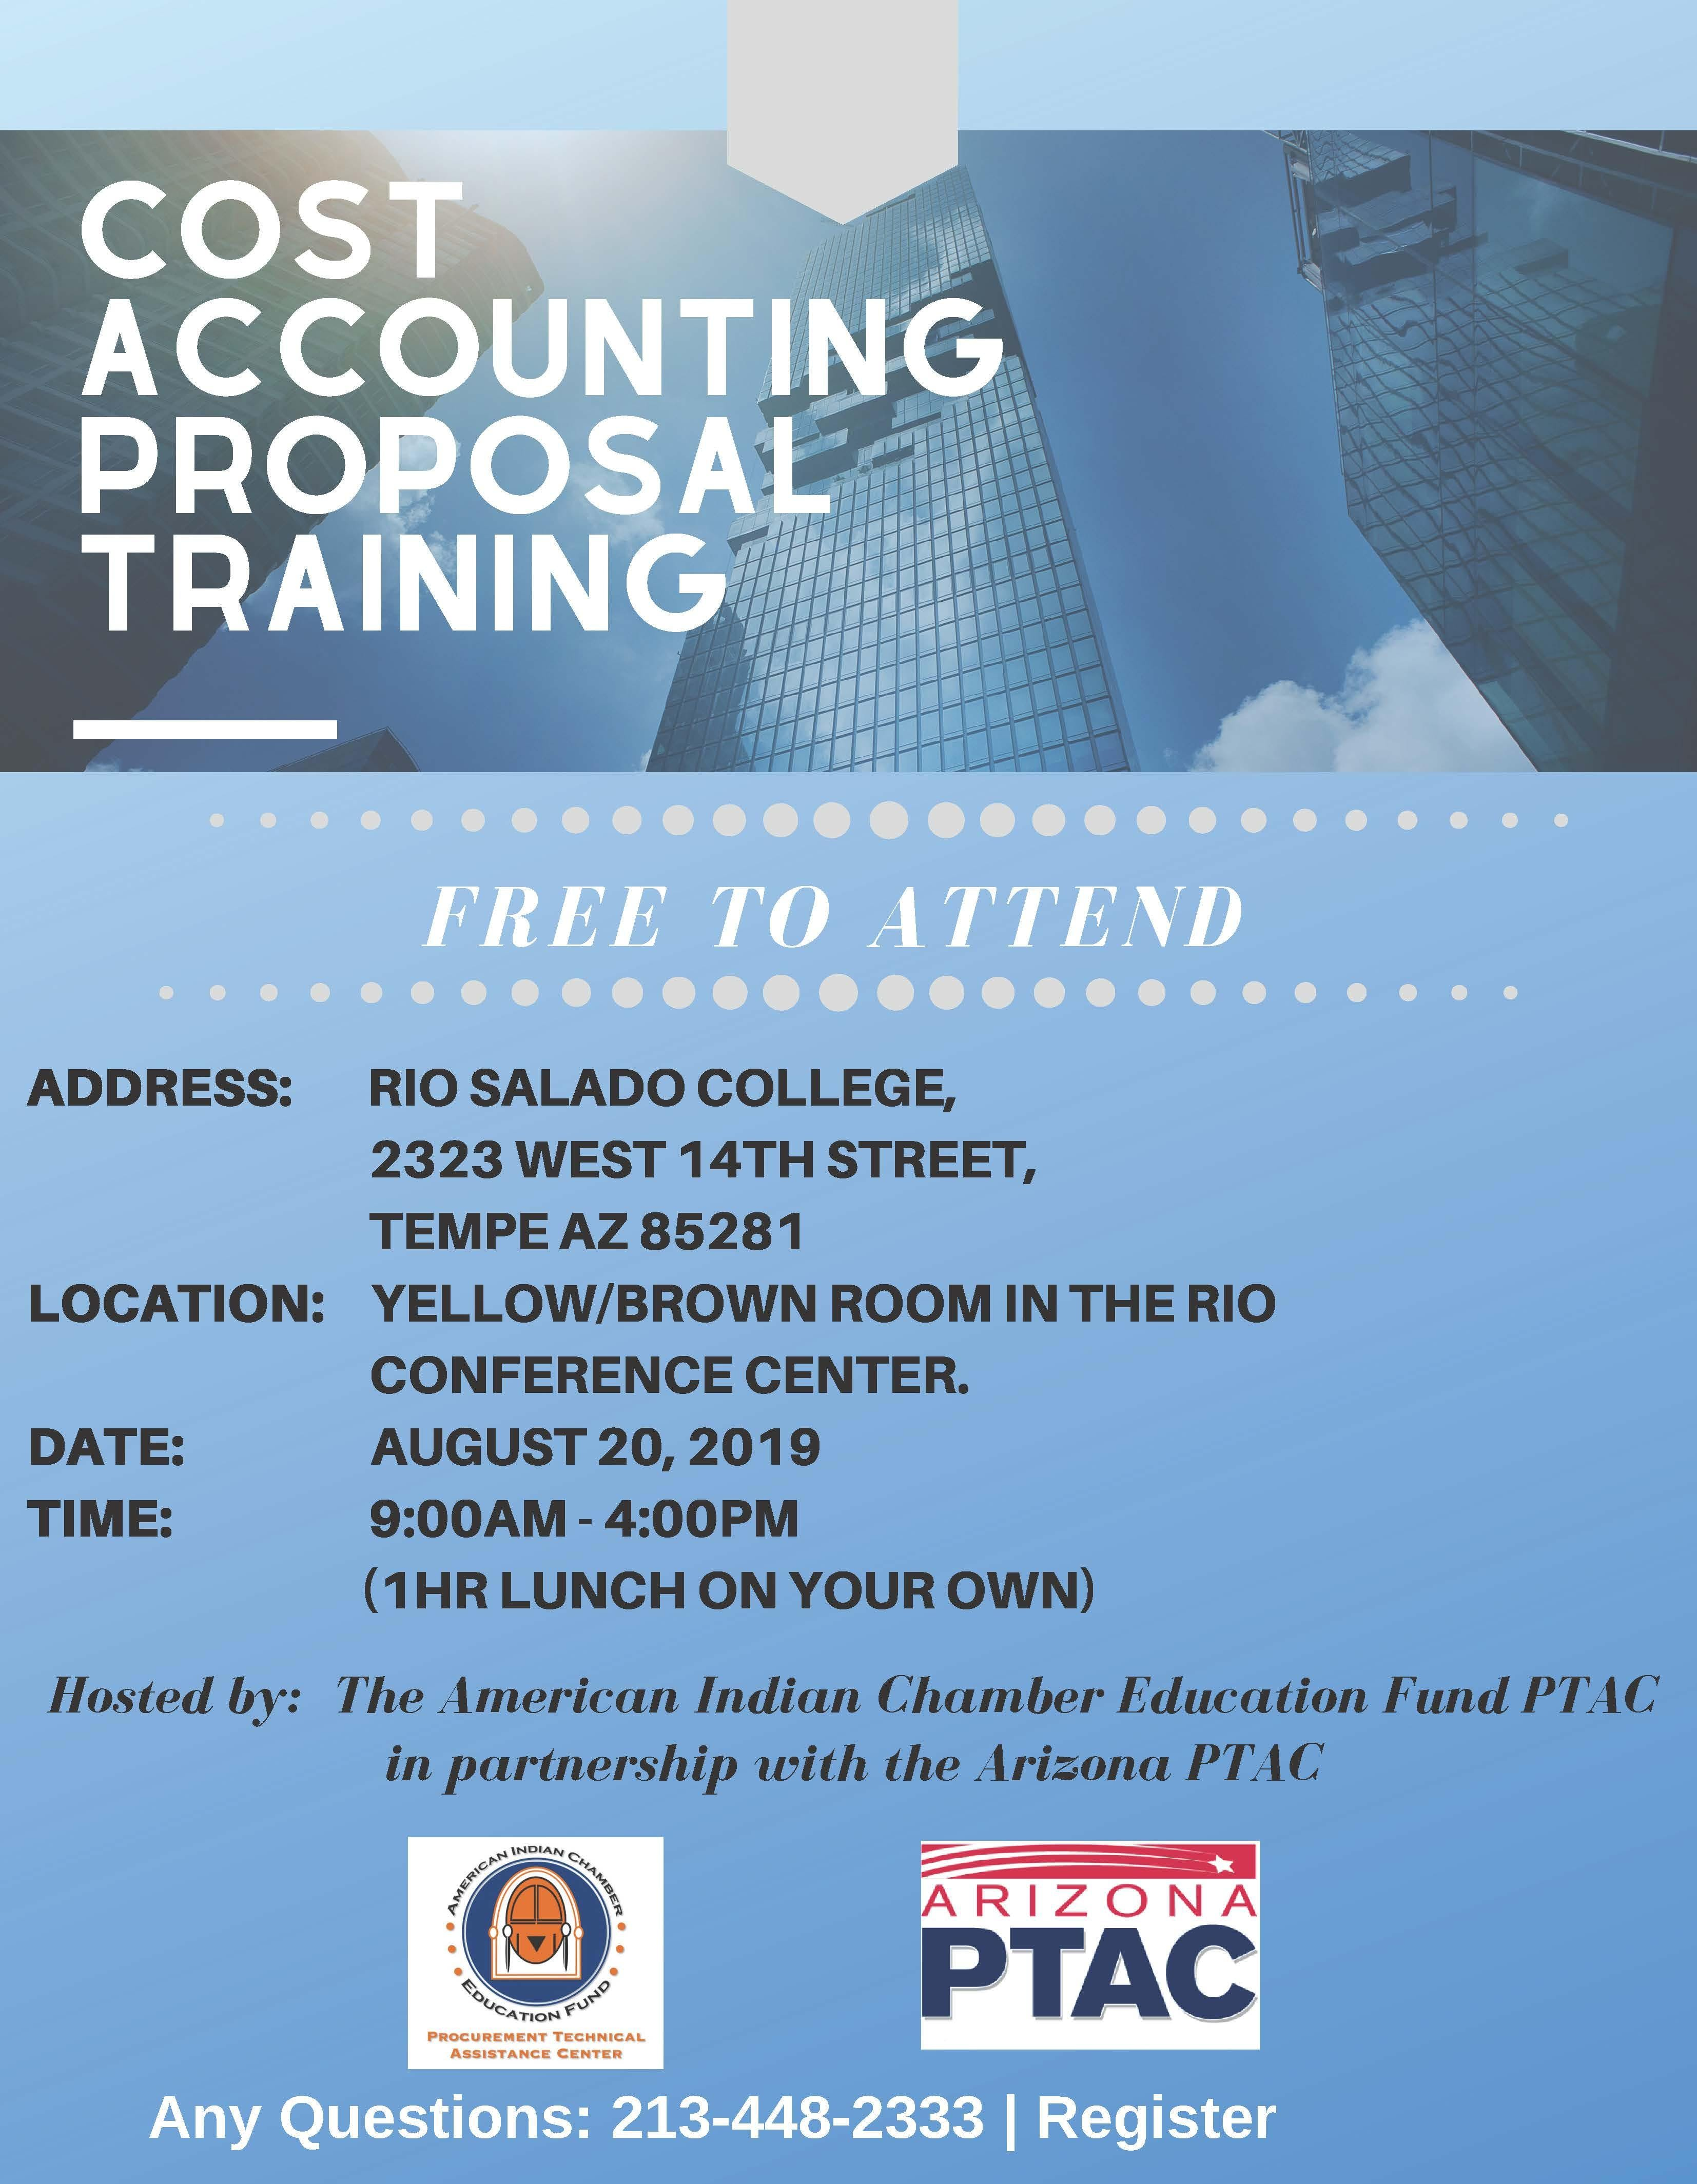 Cost Accounting Proposal Training